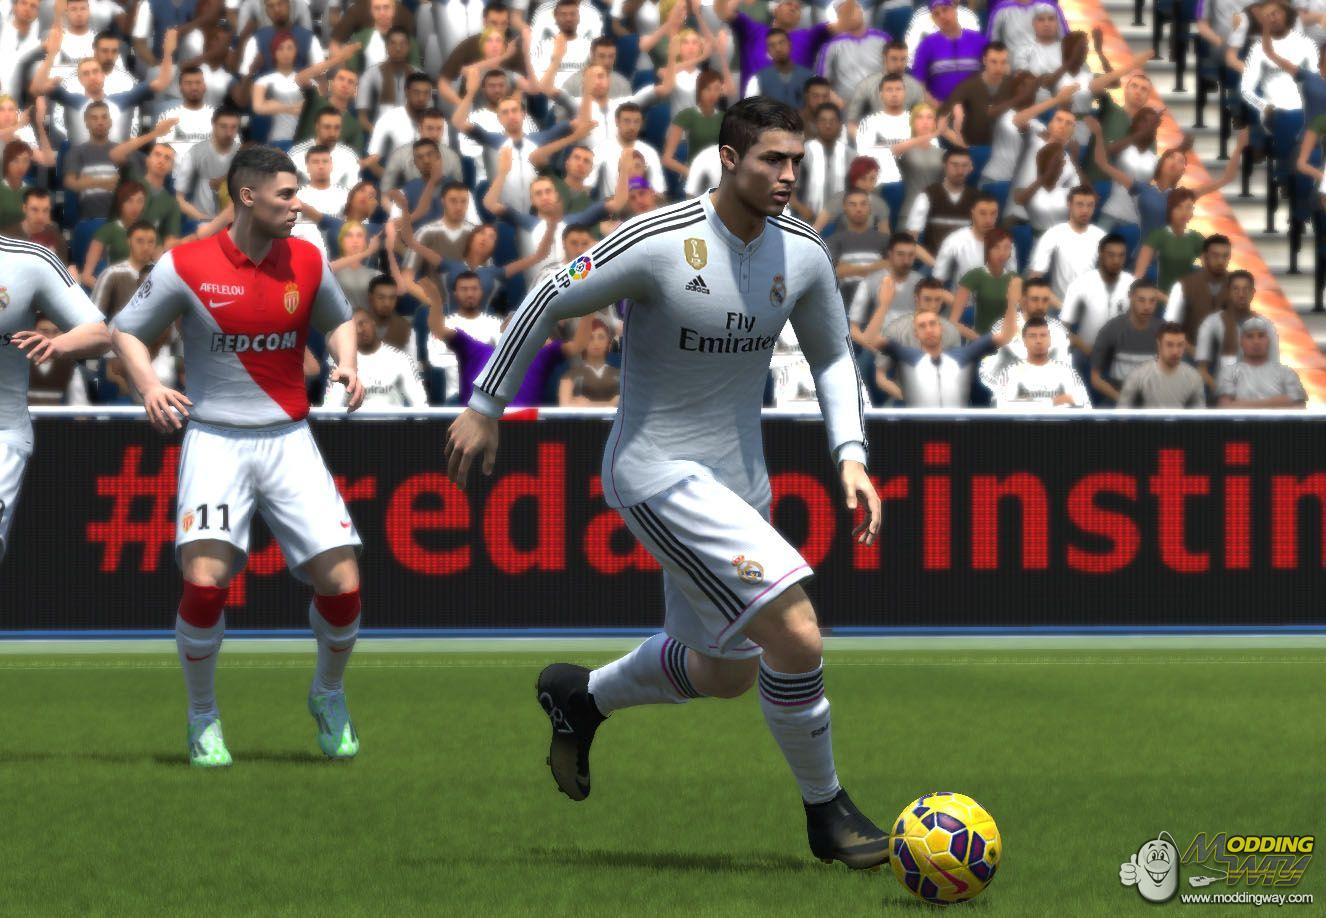 Fifa 14 patch fifa 19 + patch download review (pc/hd) youtube.